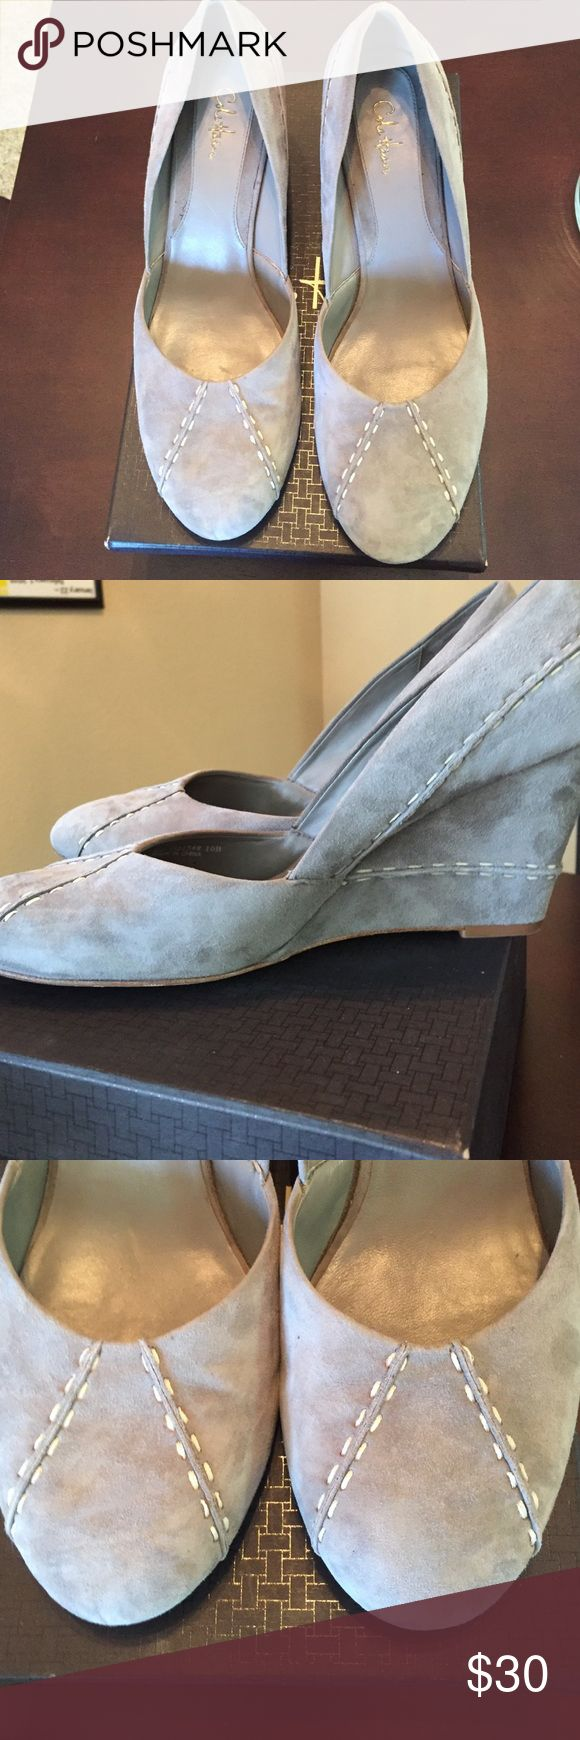 Cole Haan Trina Pump Gray Suede Cole Haan Trina Pump--Gray Suede Wedge Sz 10. Excellent condition, with original box and dust bag. Cole Haan Shoes Wedges